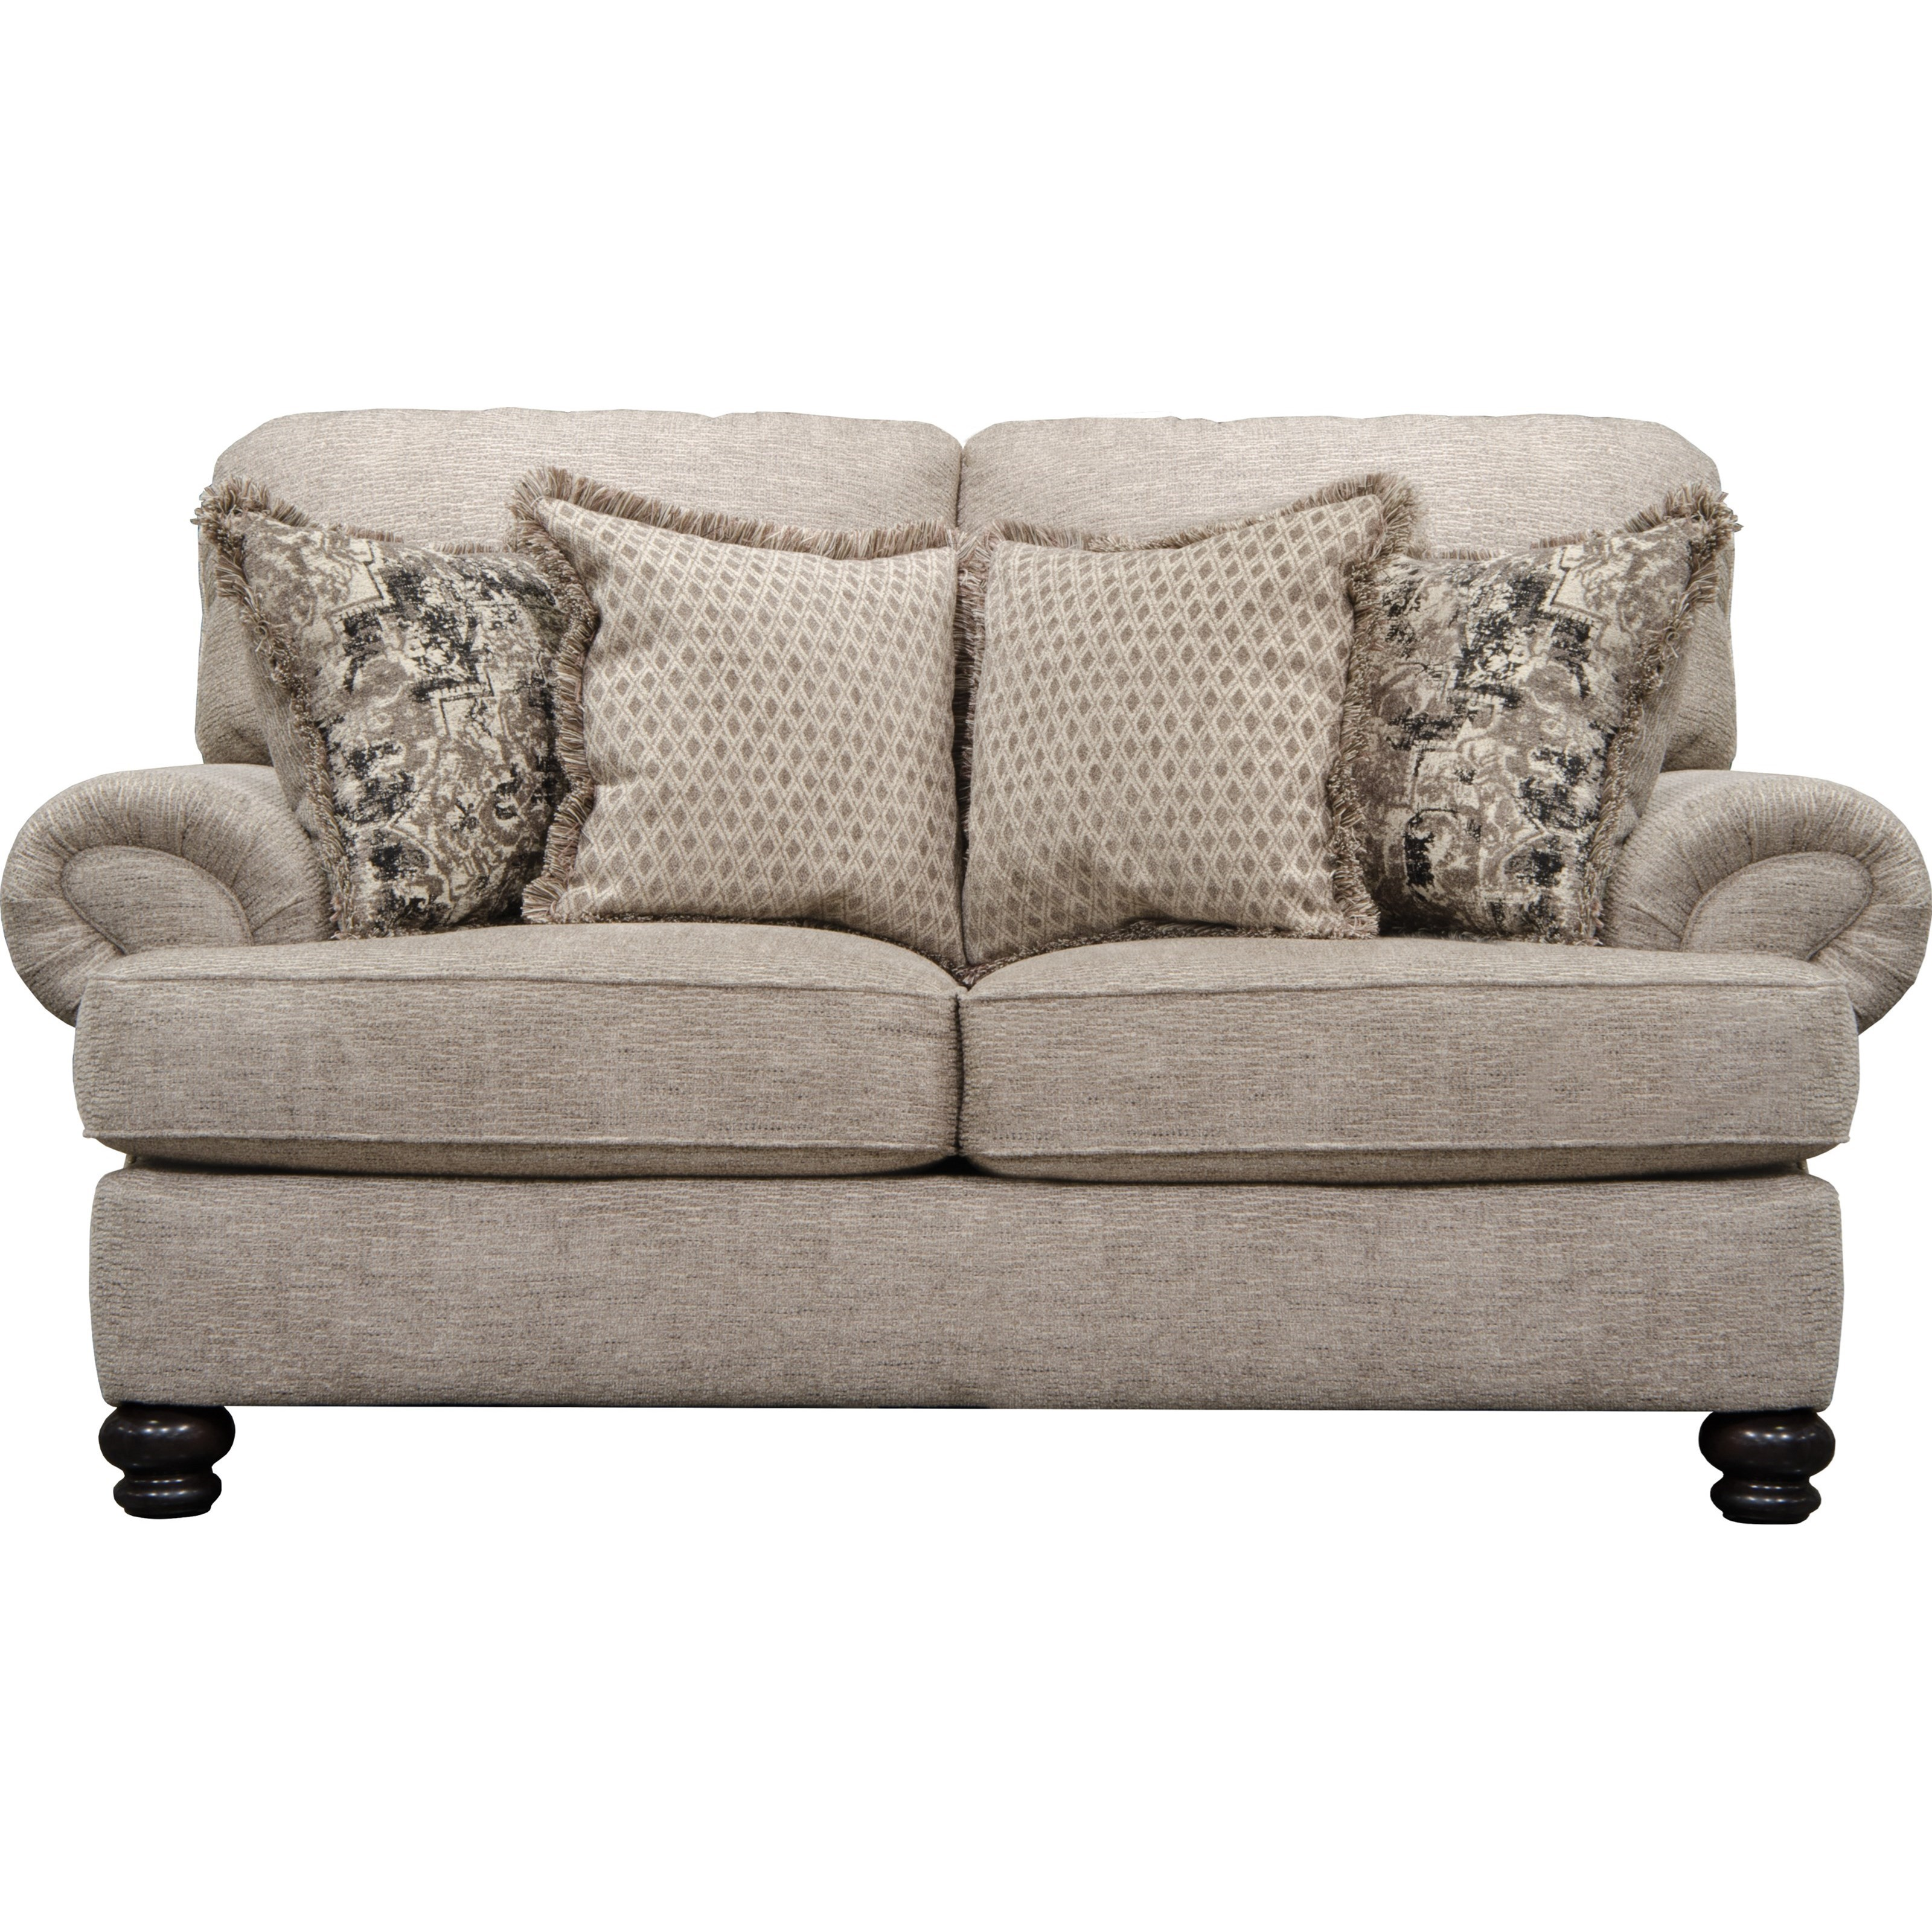 Freemont Loveseat by Jackson Furniture at Northeast Factory Direct